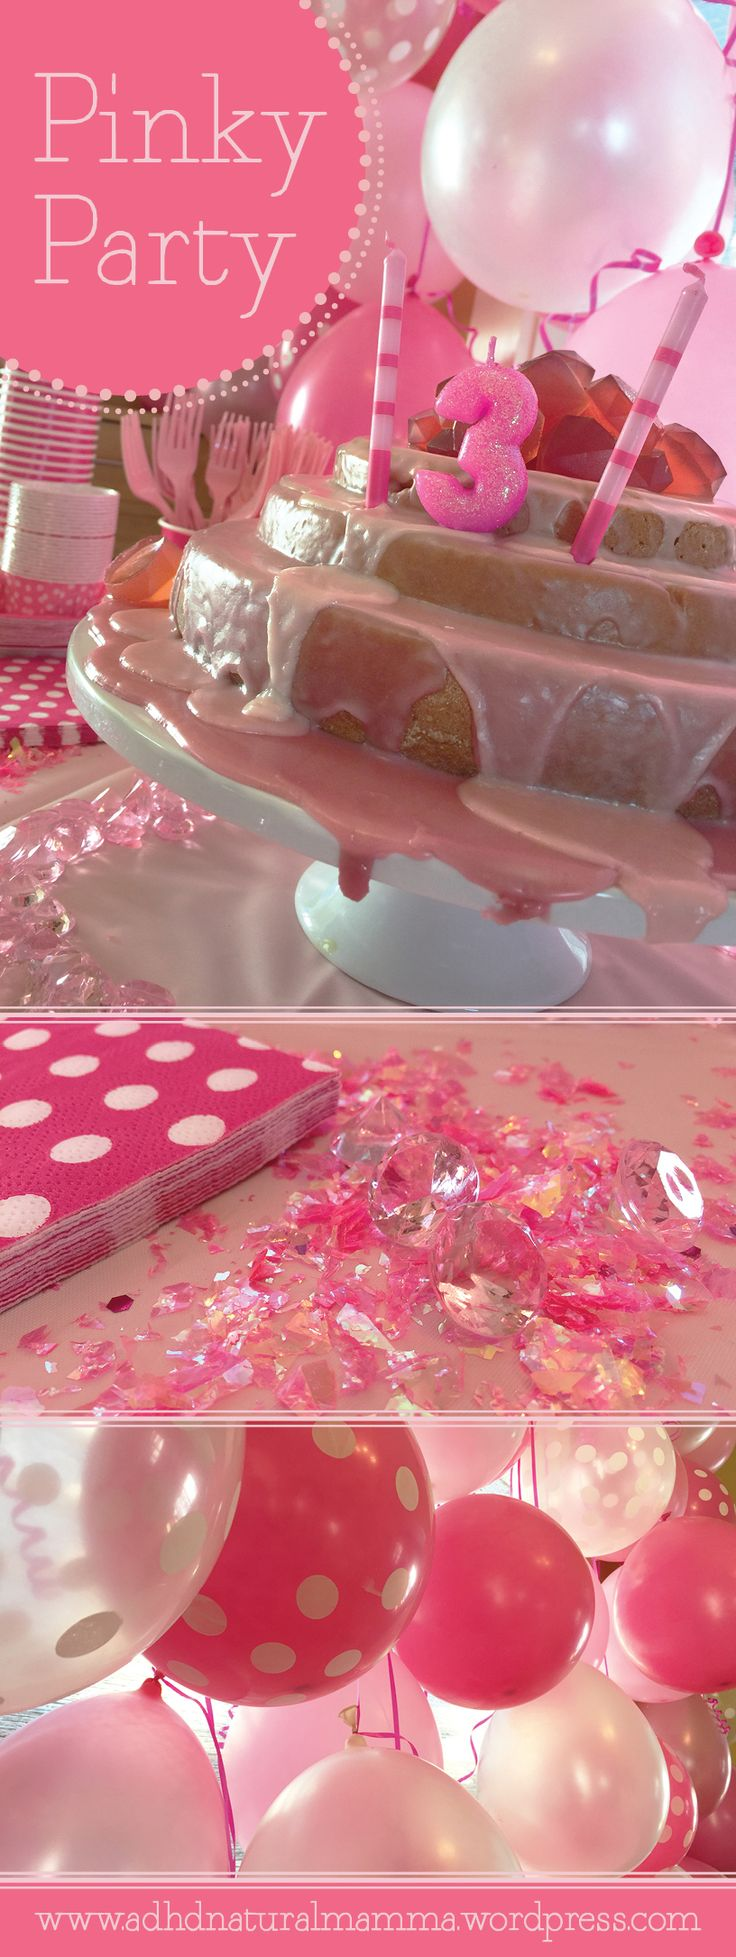 Pink birthday party for girls - colorful celebration without artificial food dyes - page includes helpful links to products and recipes - 3 year old